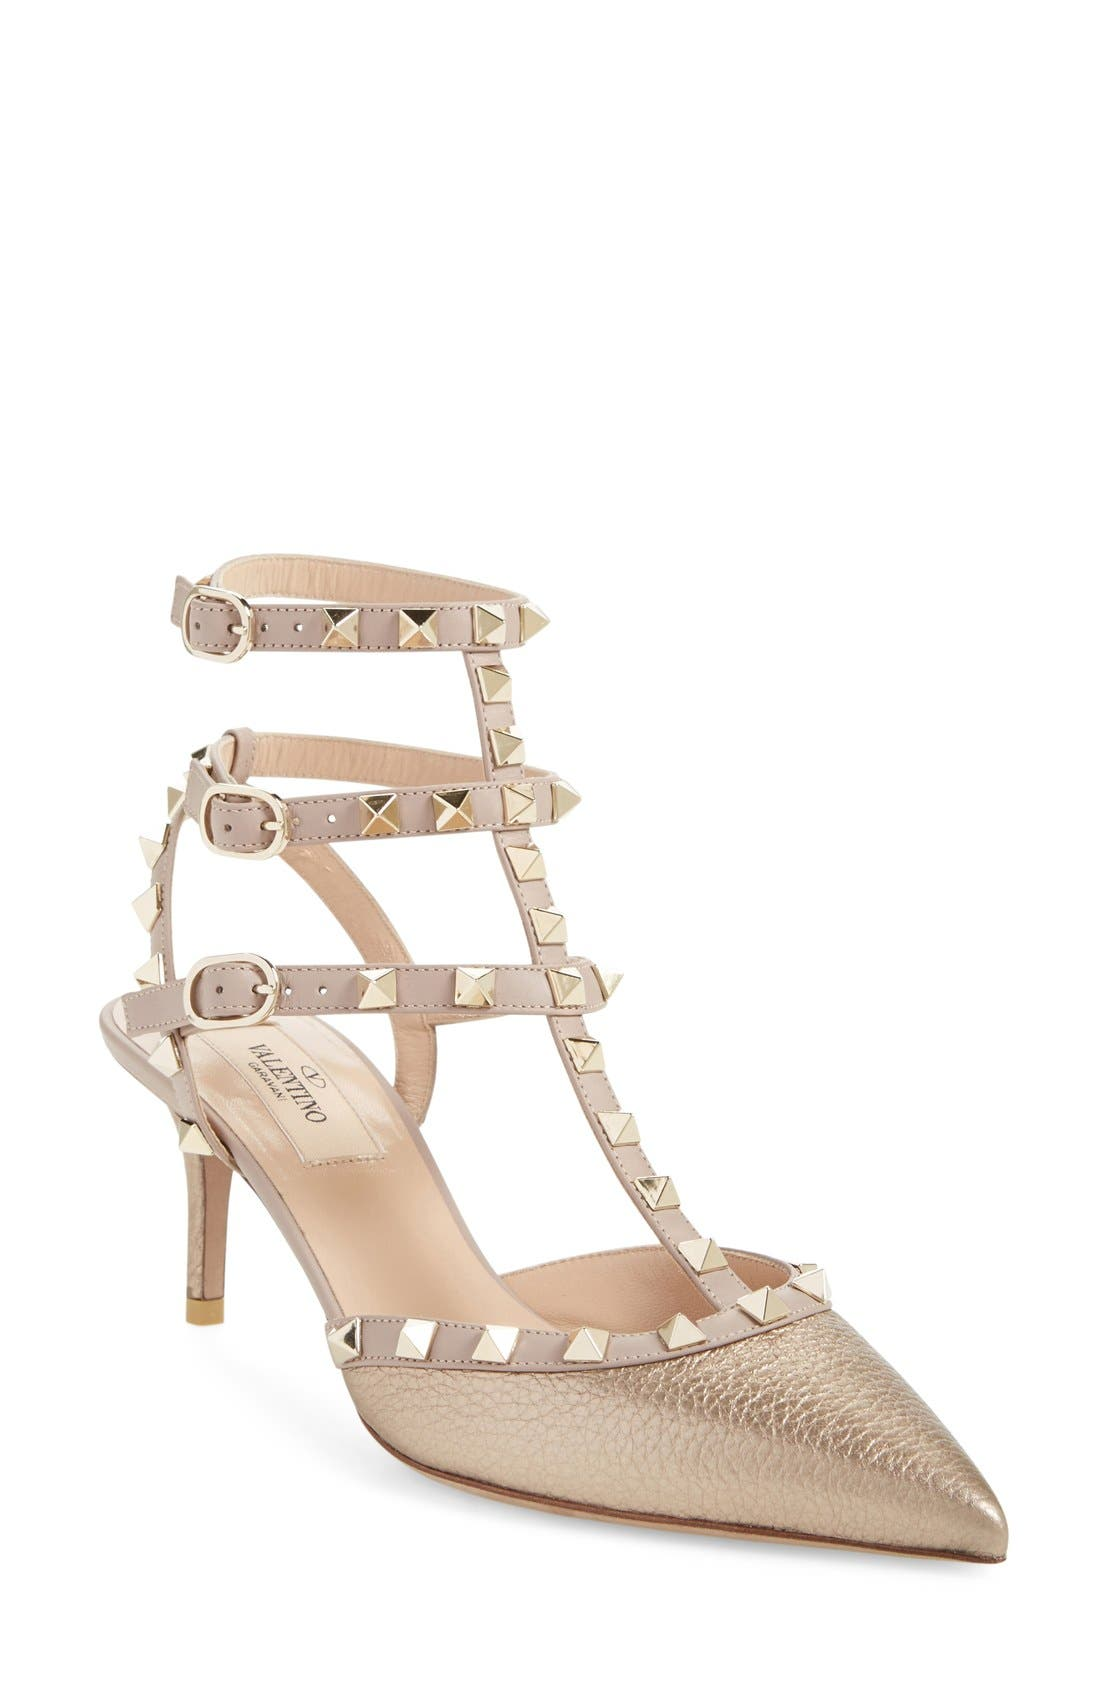 Alternate Image 1 Selected - Valentino 'Rockstud' T-Strap Pump (Women)